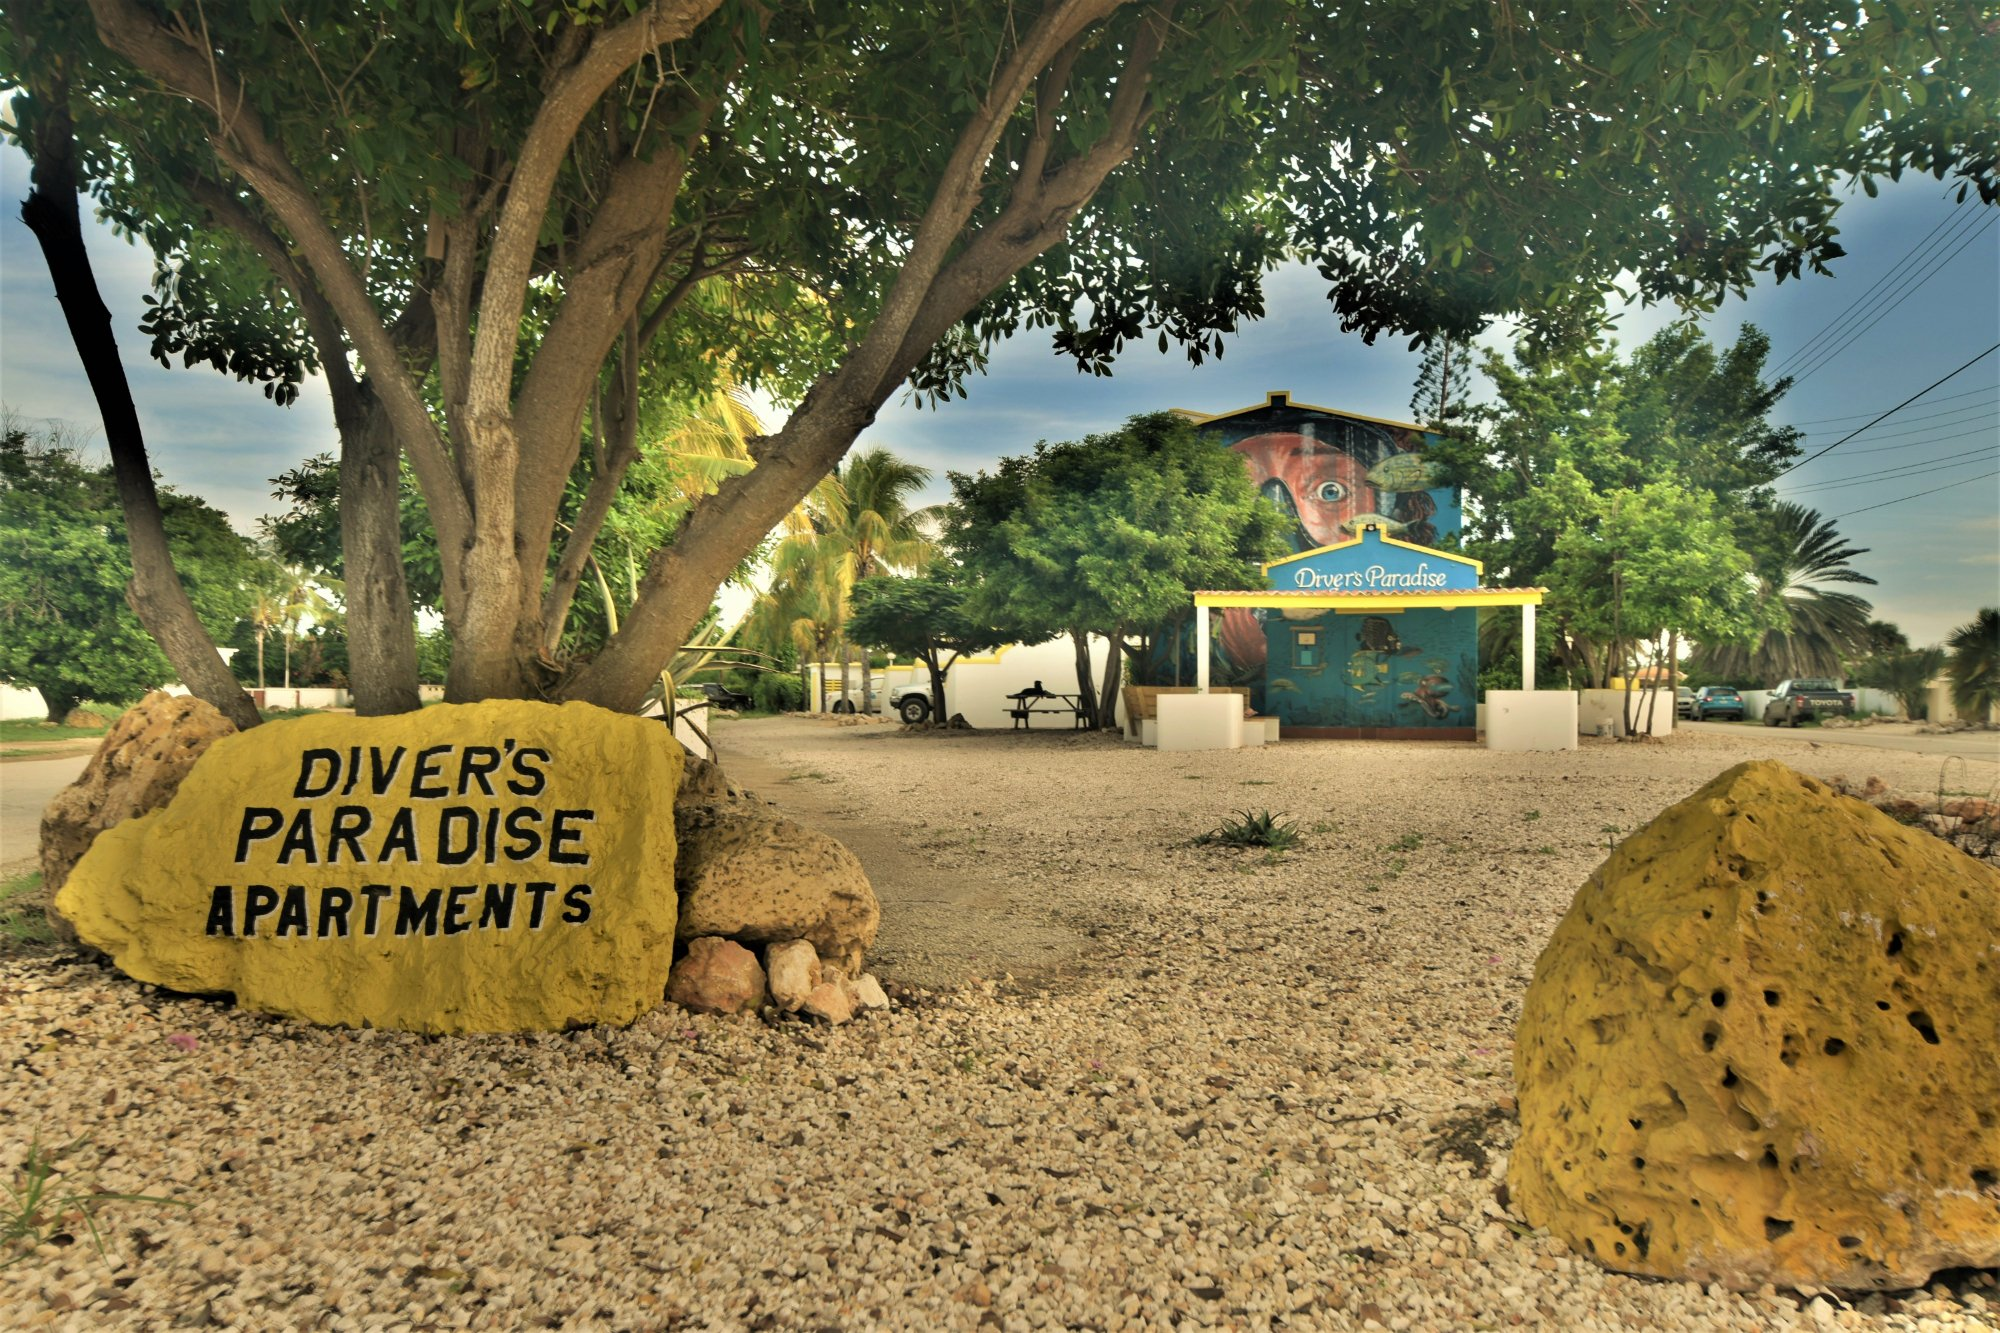 Divers Paradise Bonaire Apartments